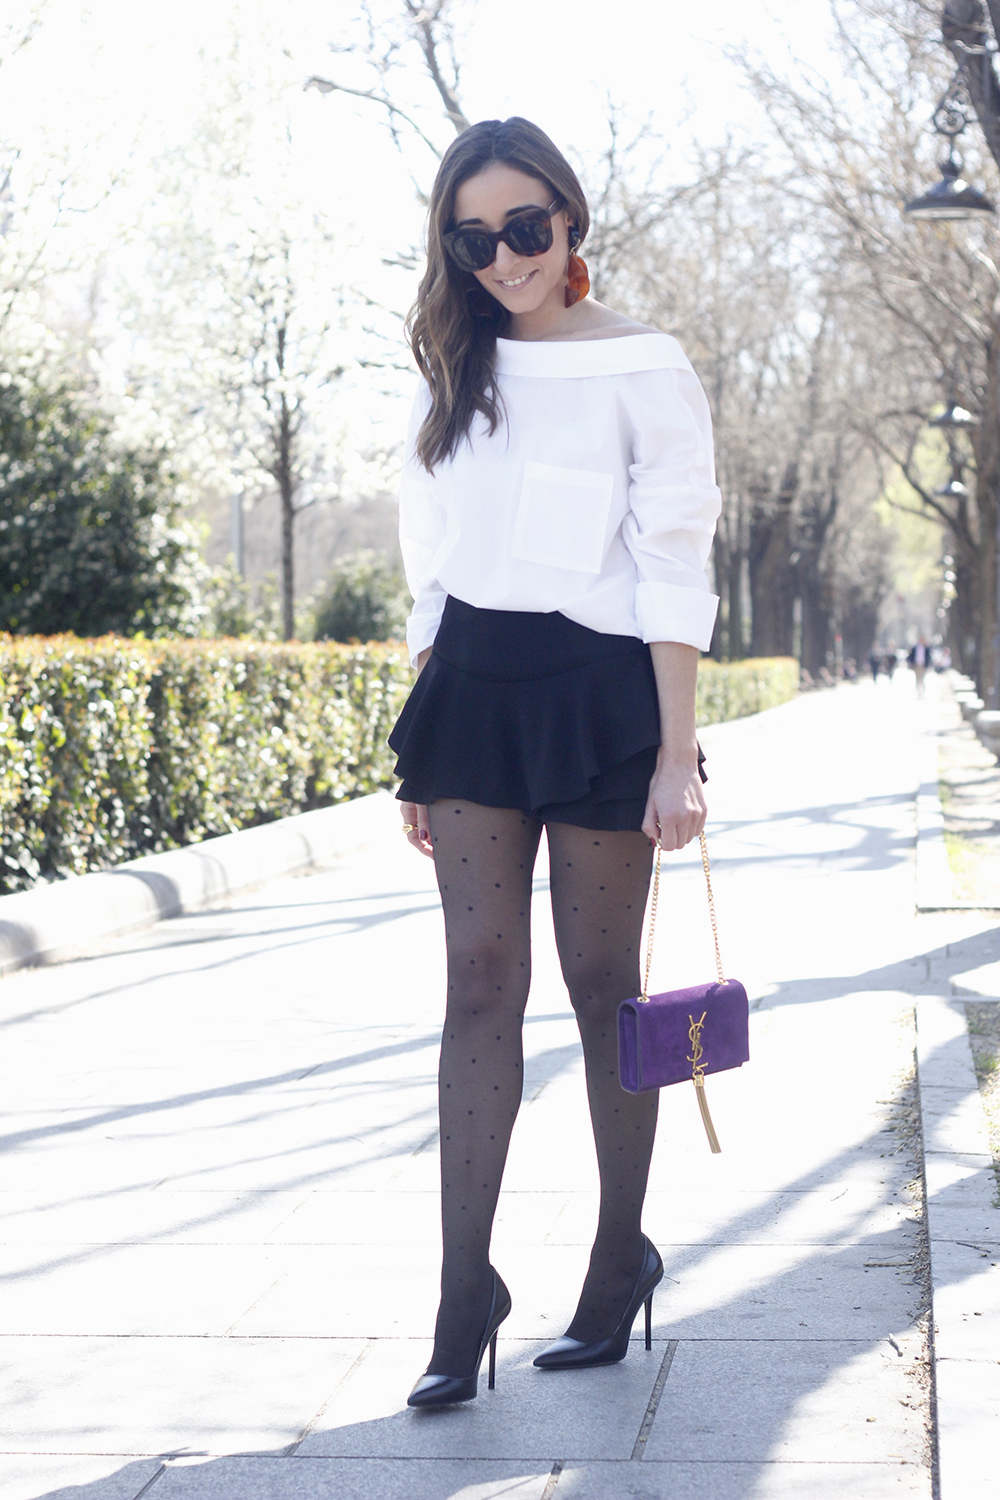 Ruffled shorts white shirt saint lauren bag céline outfit style02